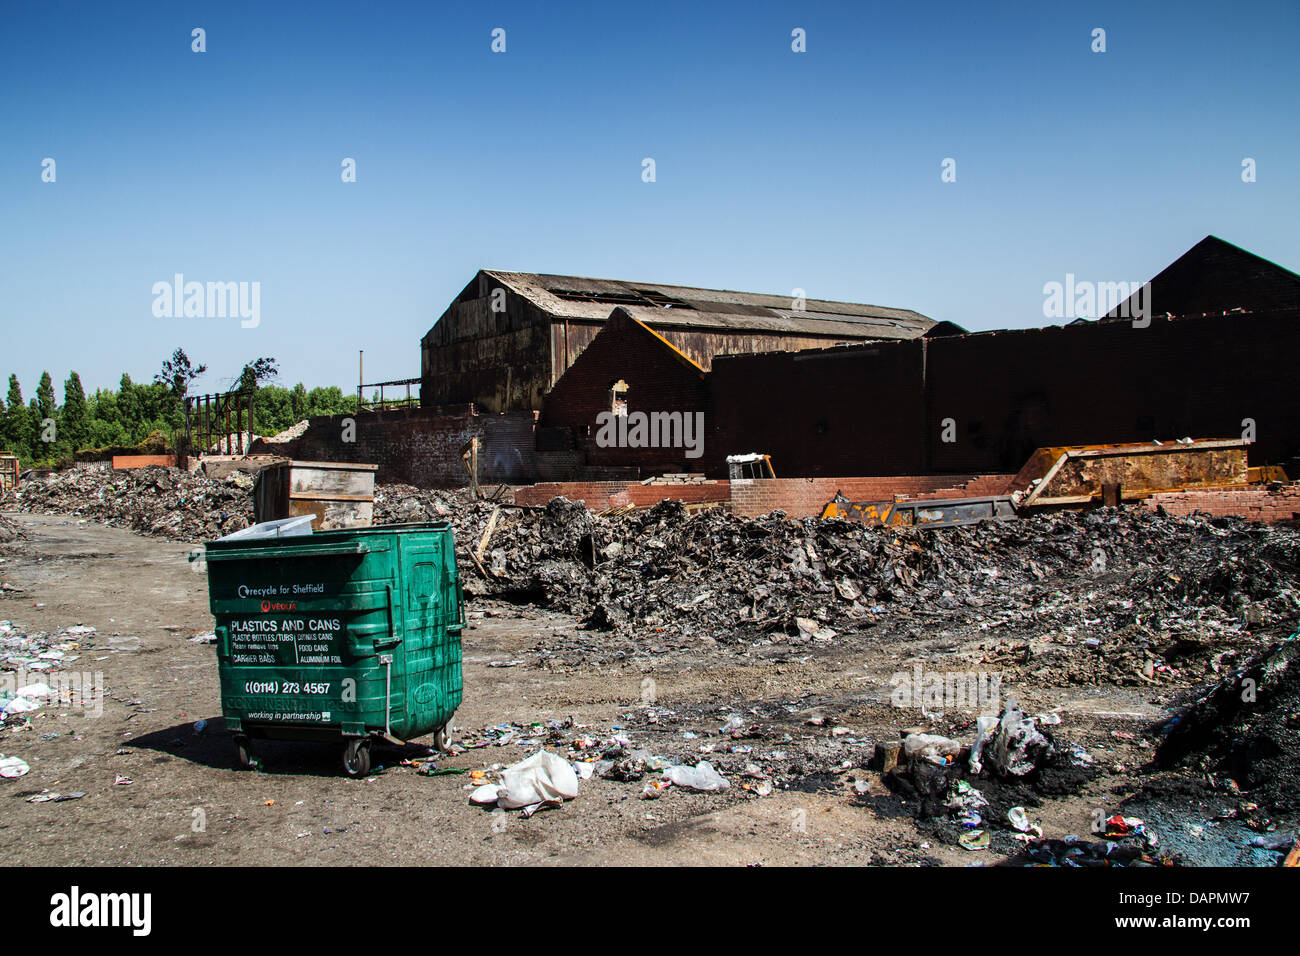 Sheffield, UK. 17th July, 2013. Aftermath of fire at recycling centre in Sheffield that occurred on Sunday 15th - Stock Image